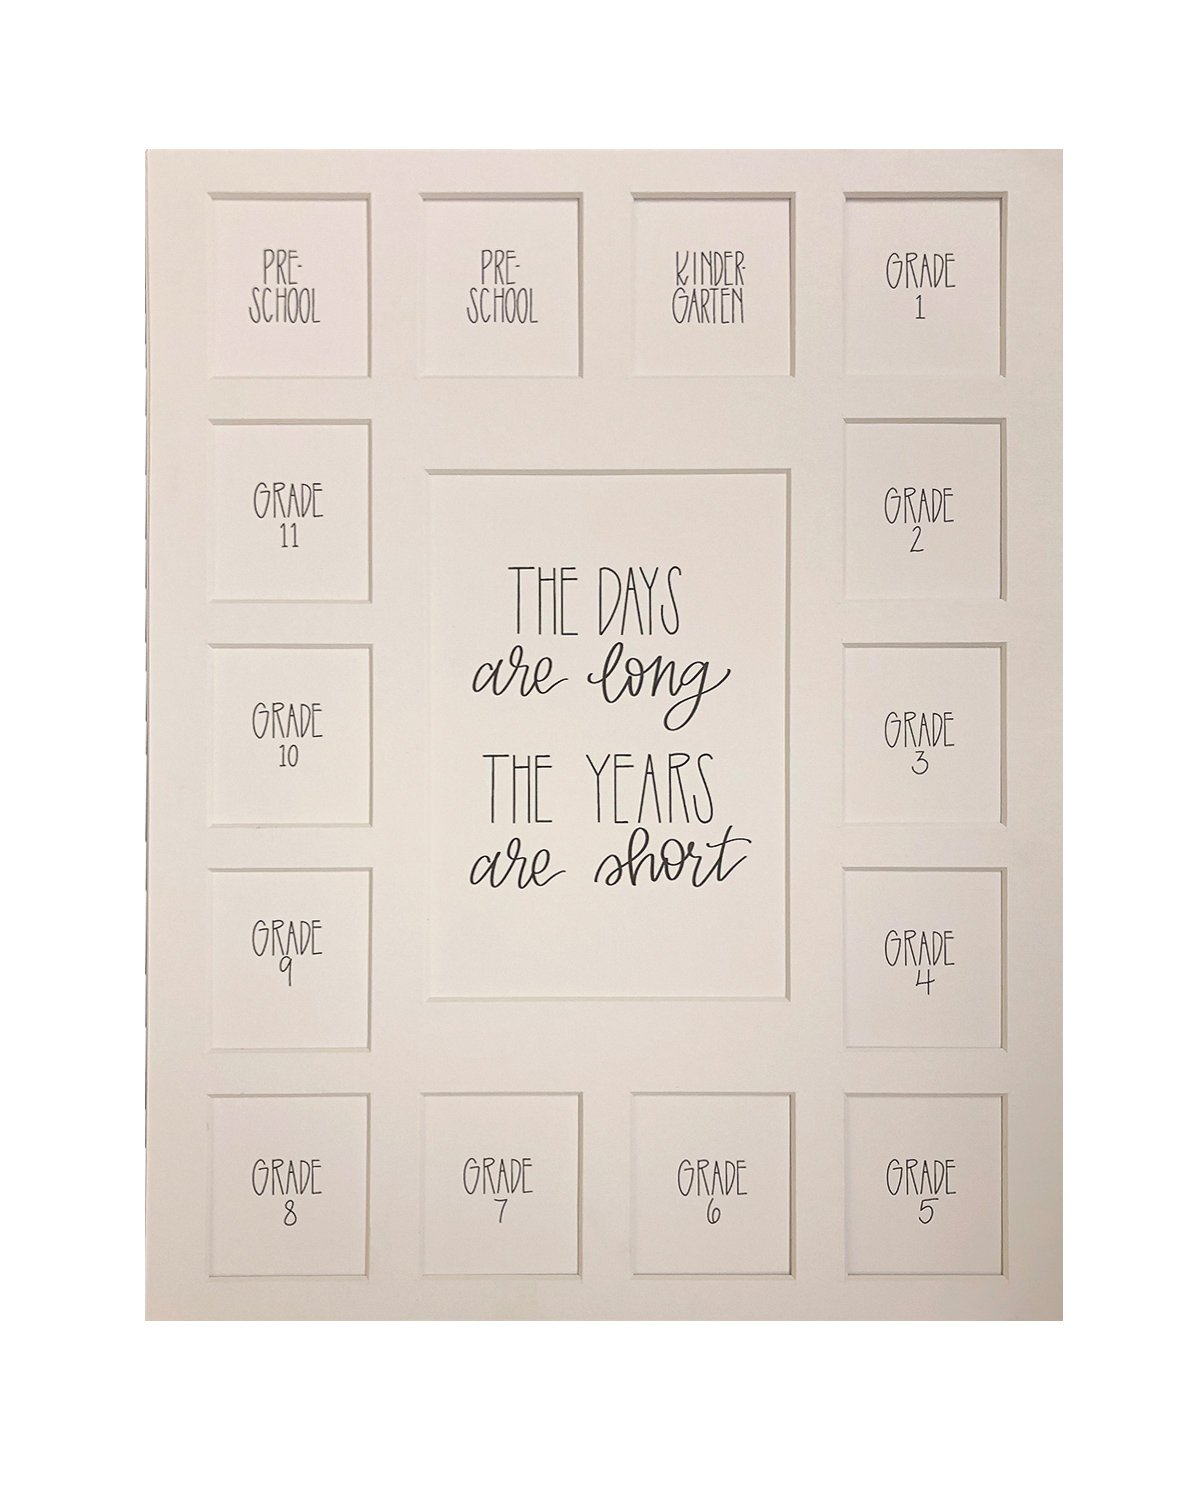 All Things For Mom School Picture Mat 11x14 The Days are Long, The Years are Short on a White Mat, Pre-School-12, 15 Openings, Mat Only JM0003